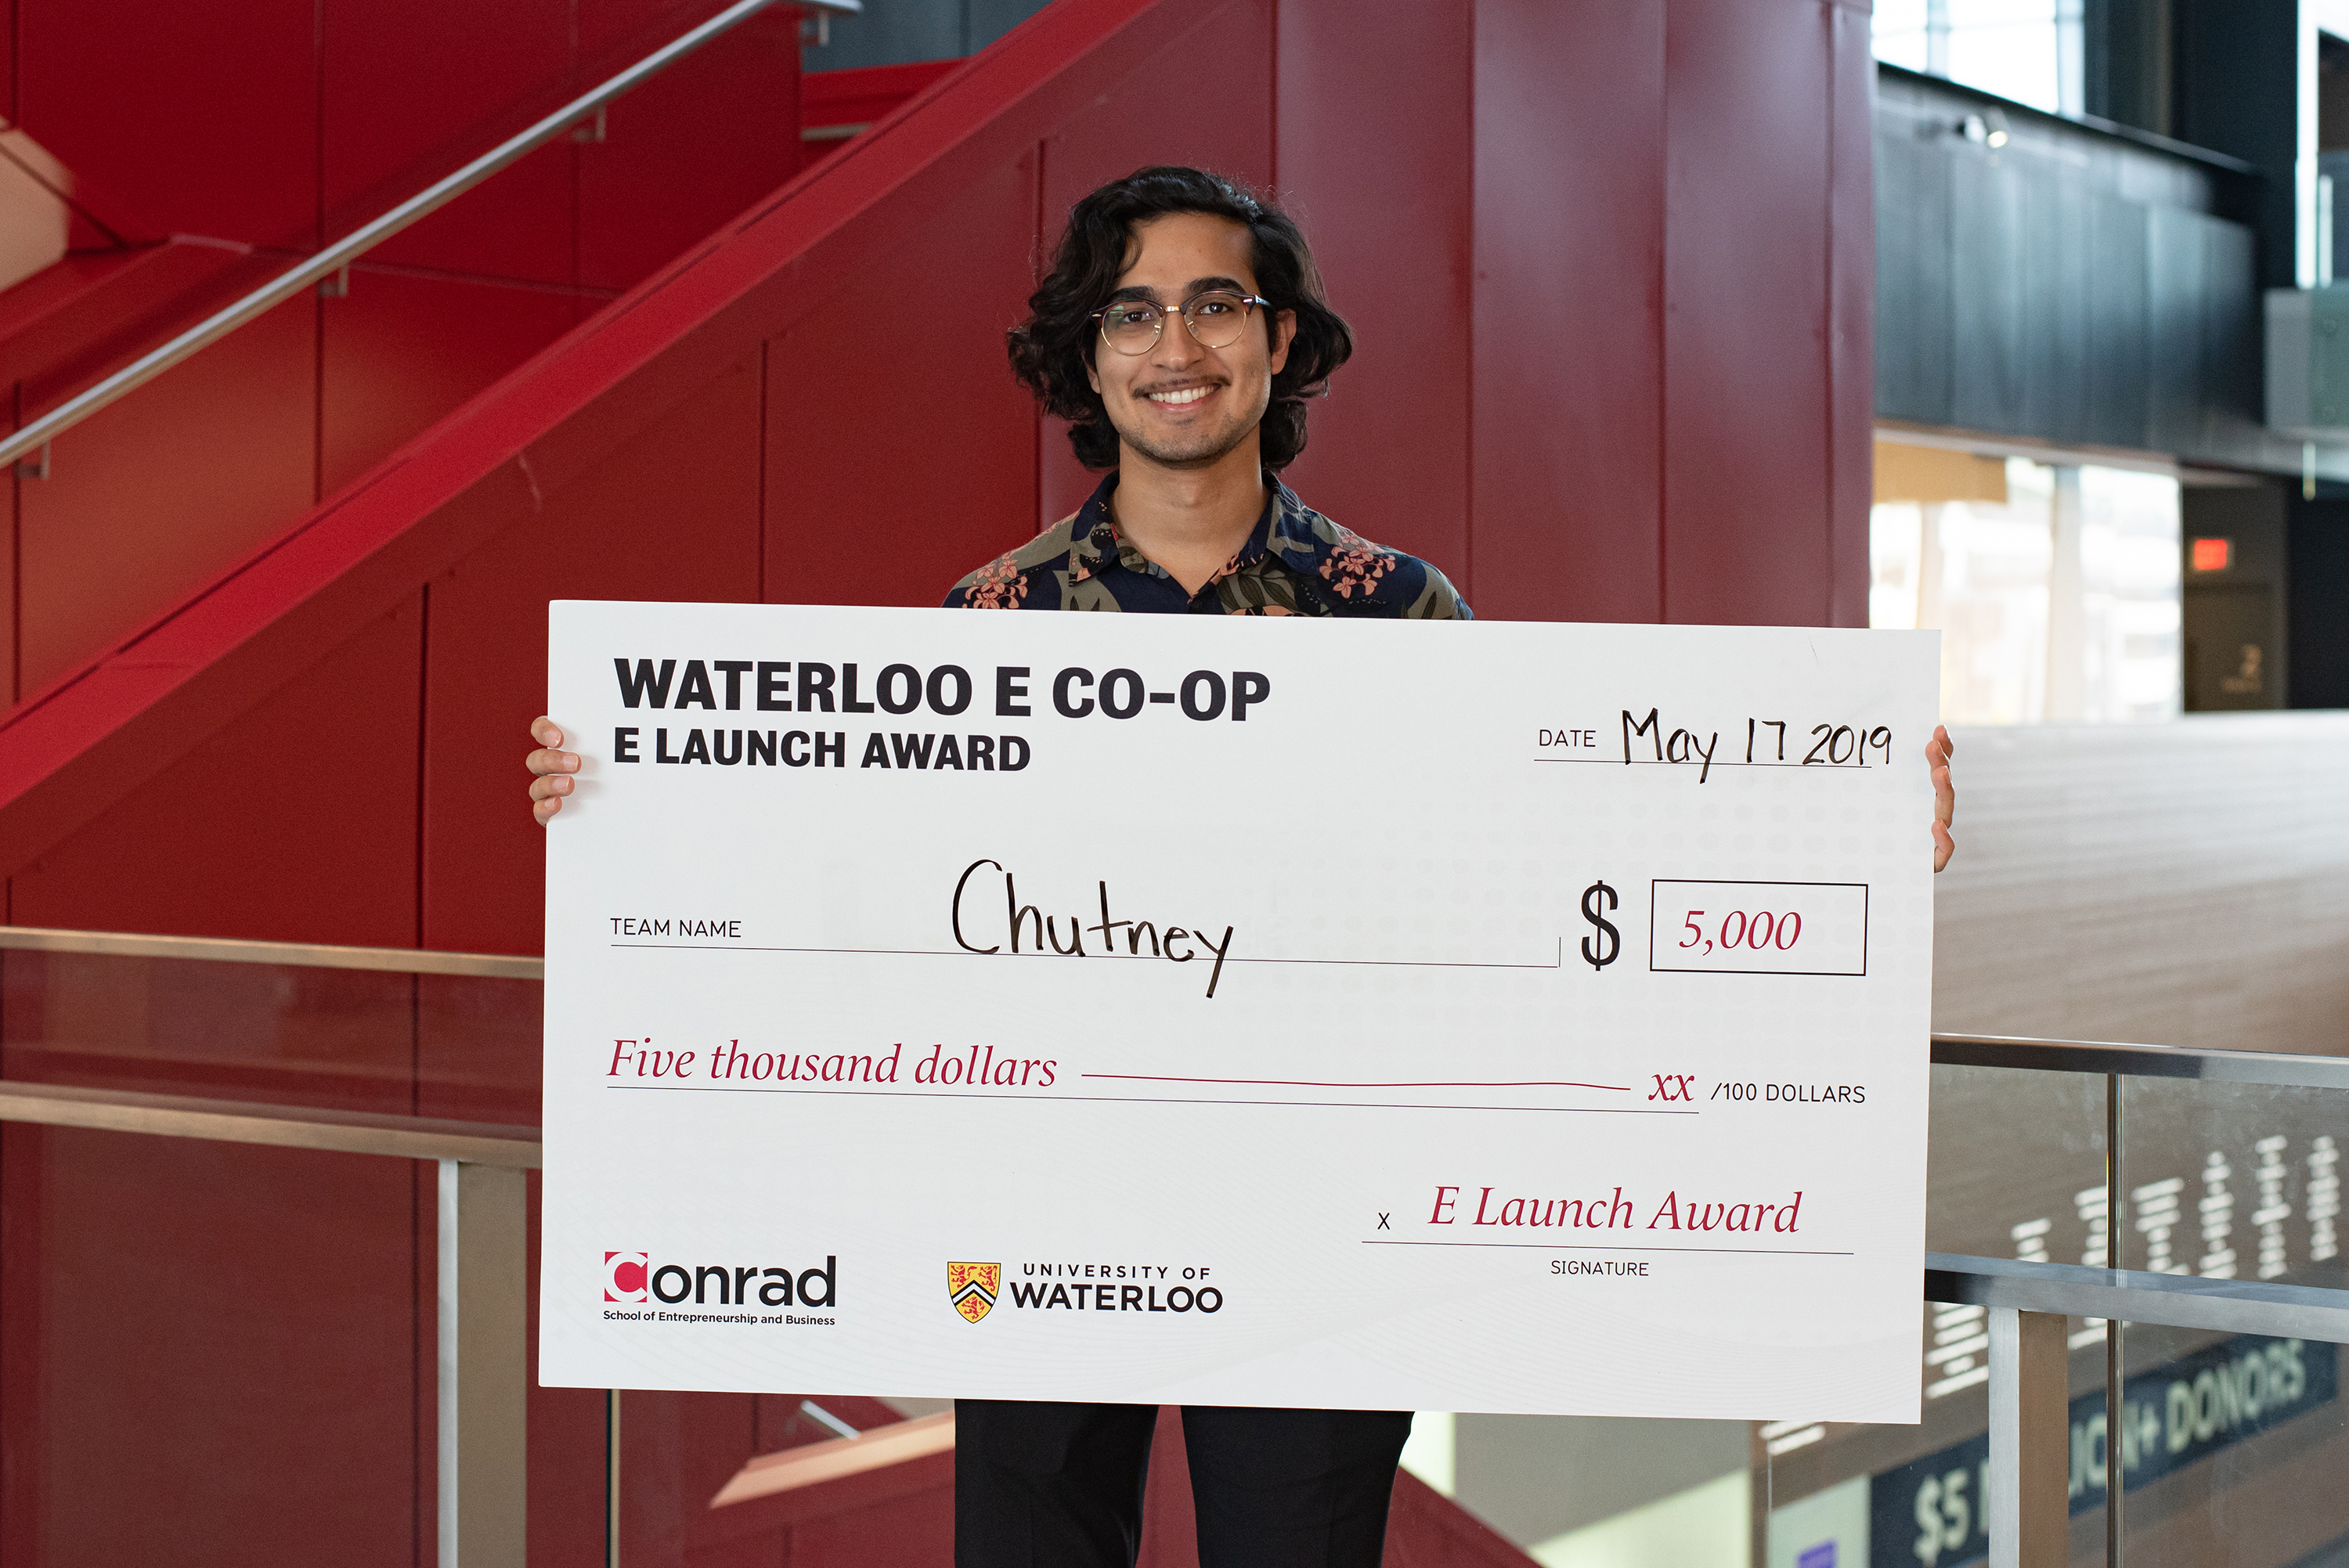 E Co-op award winner Osman Bari with award cheque.